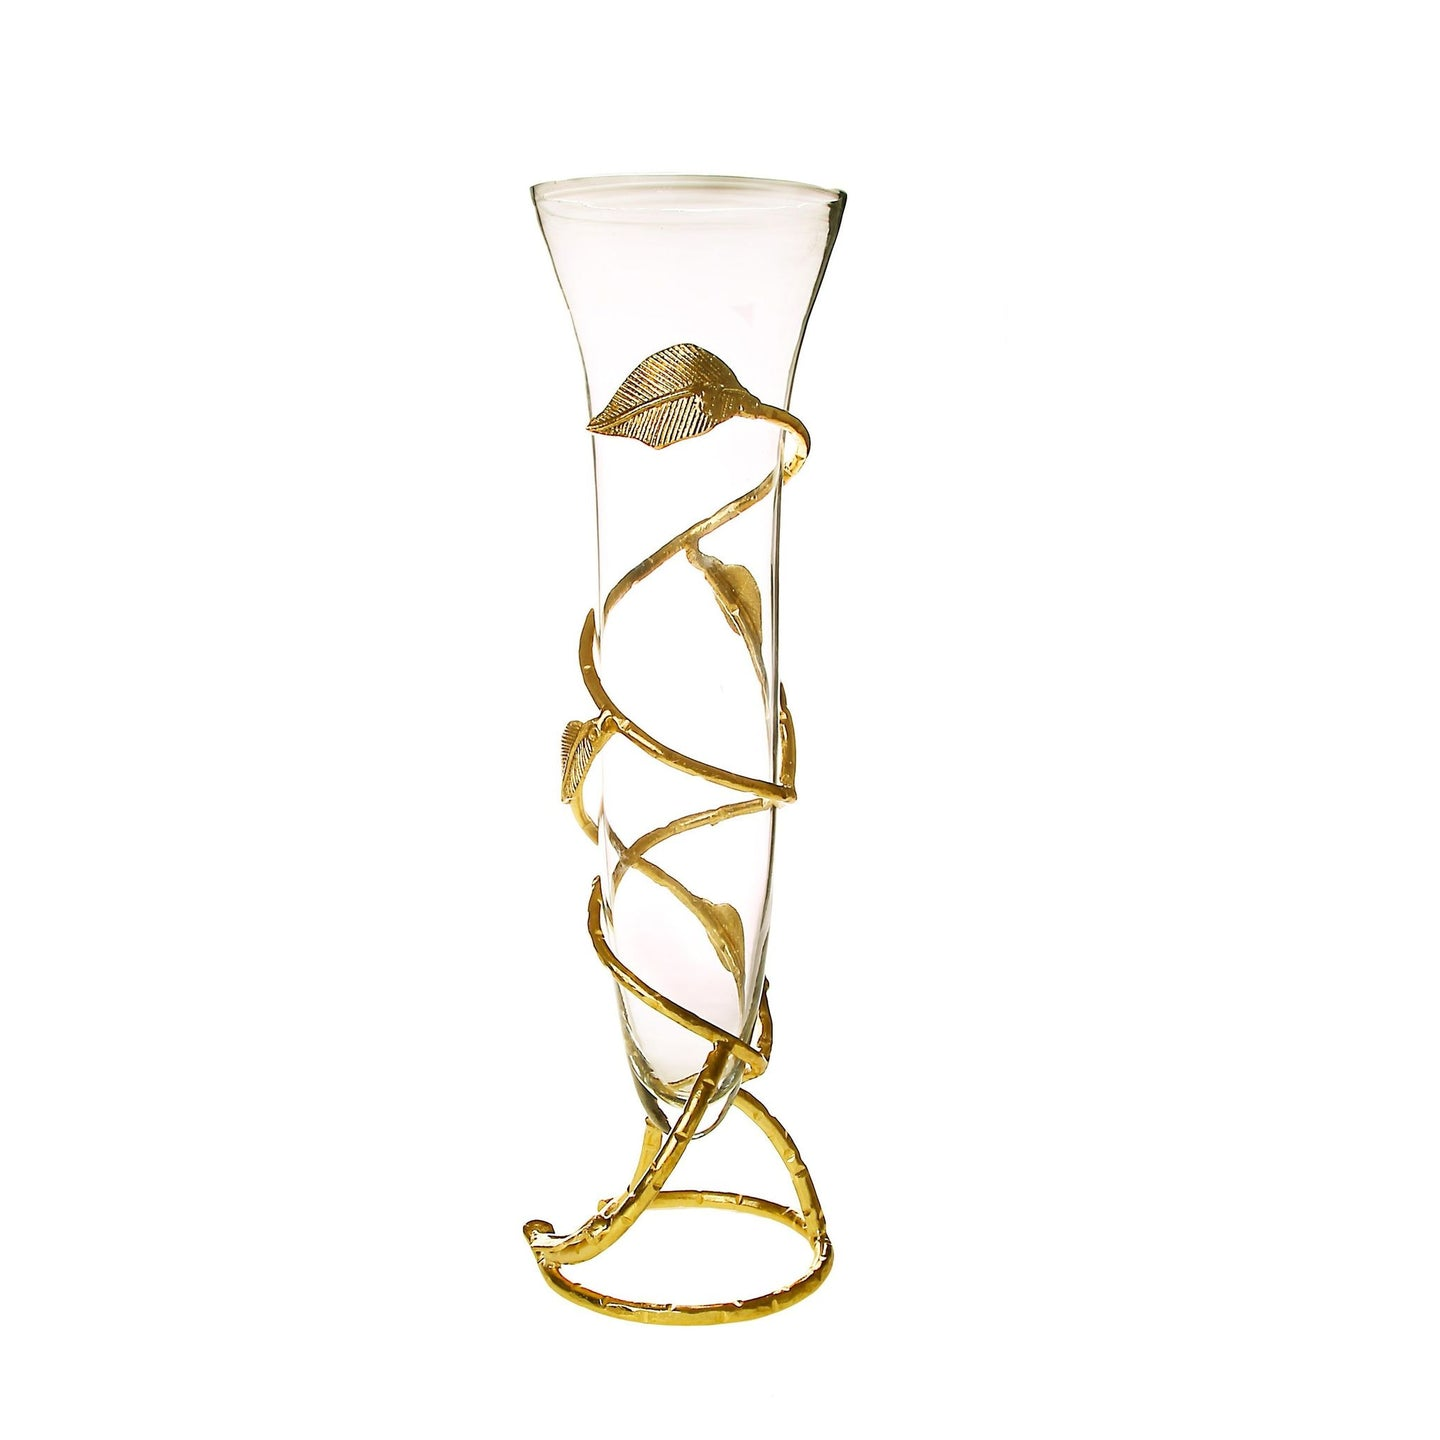 Classic Touch Decor Glass Vase With Gold Leaf Design